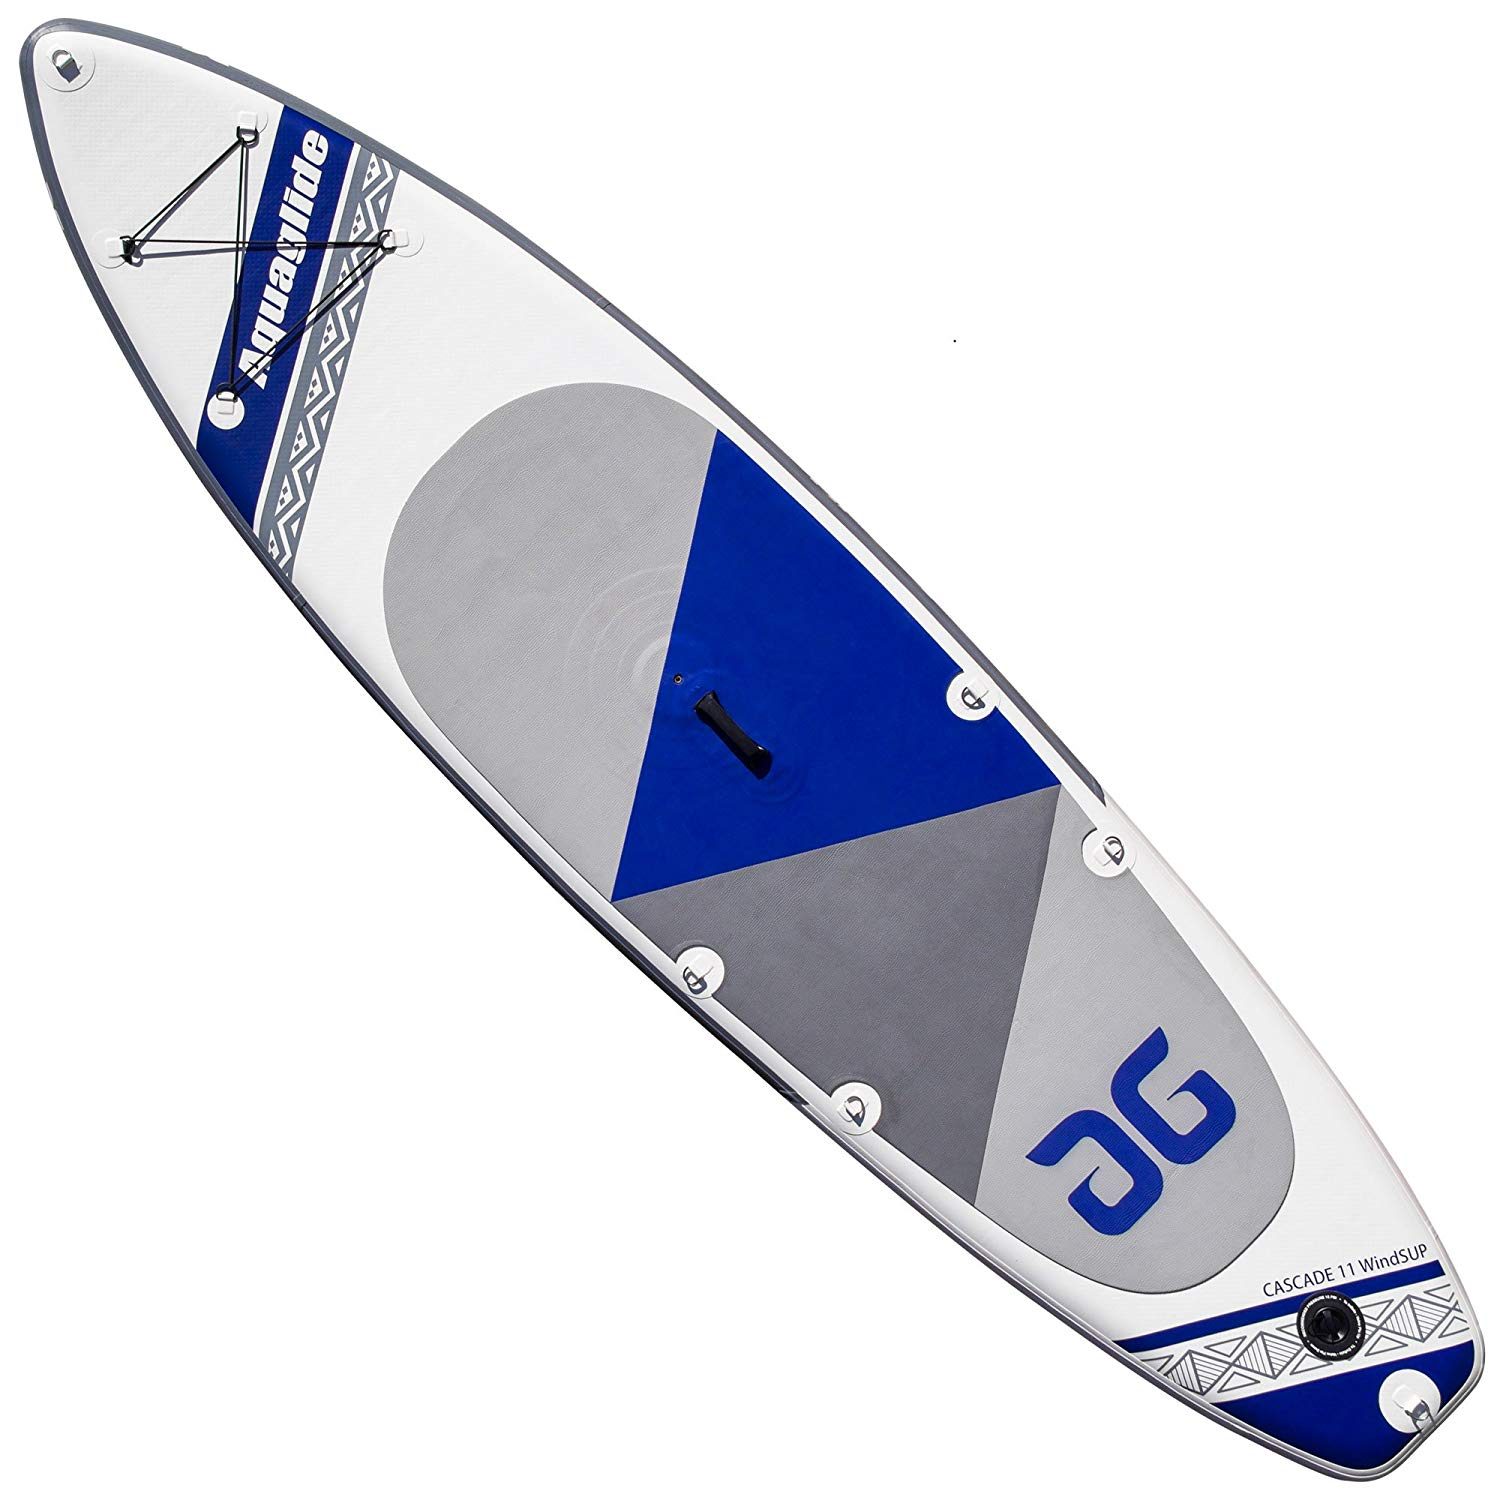 Get quotations · aquaglide cascade 11 inflatable windsurfer board with 4 2 rig